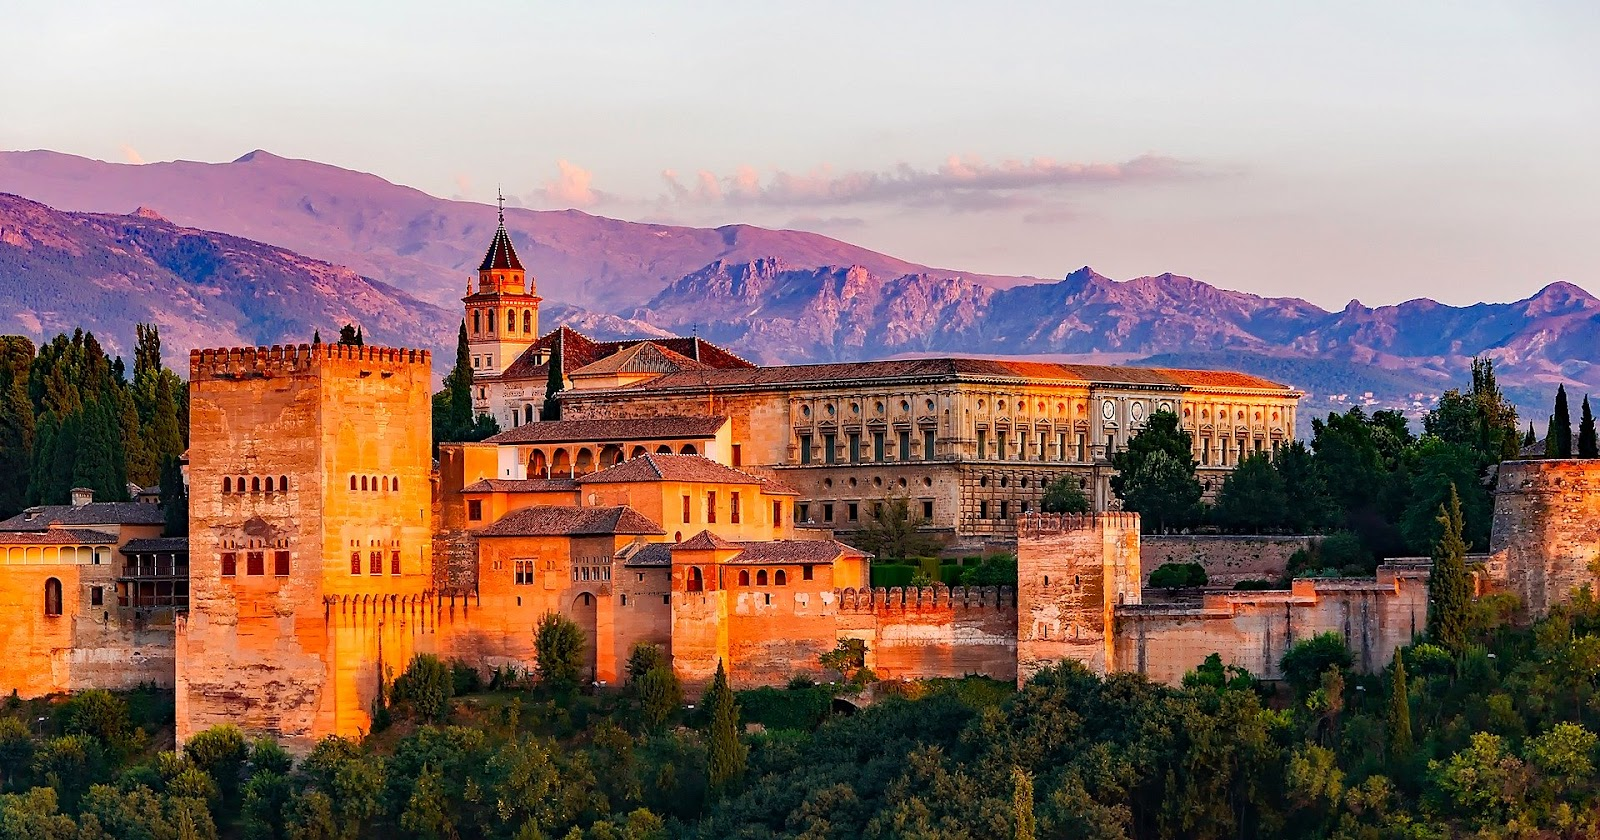 granda alhambra palace with mountains in background during sunset spain tourism